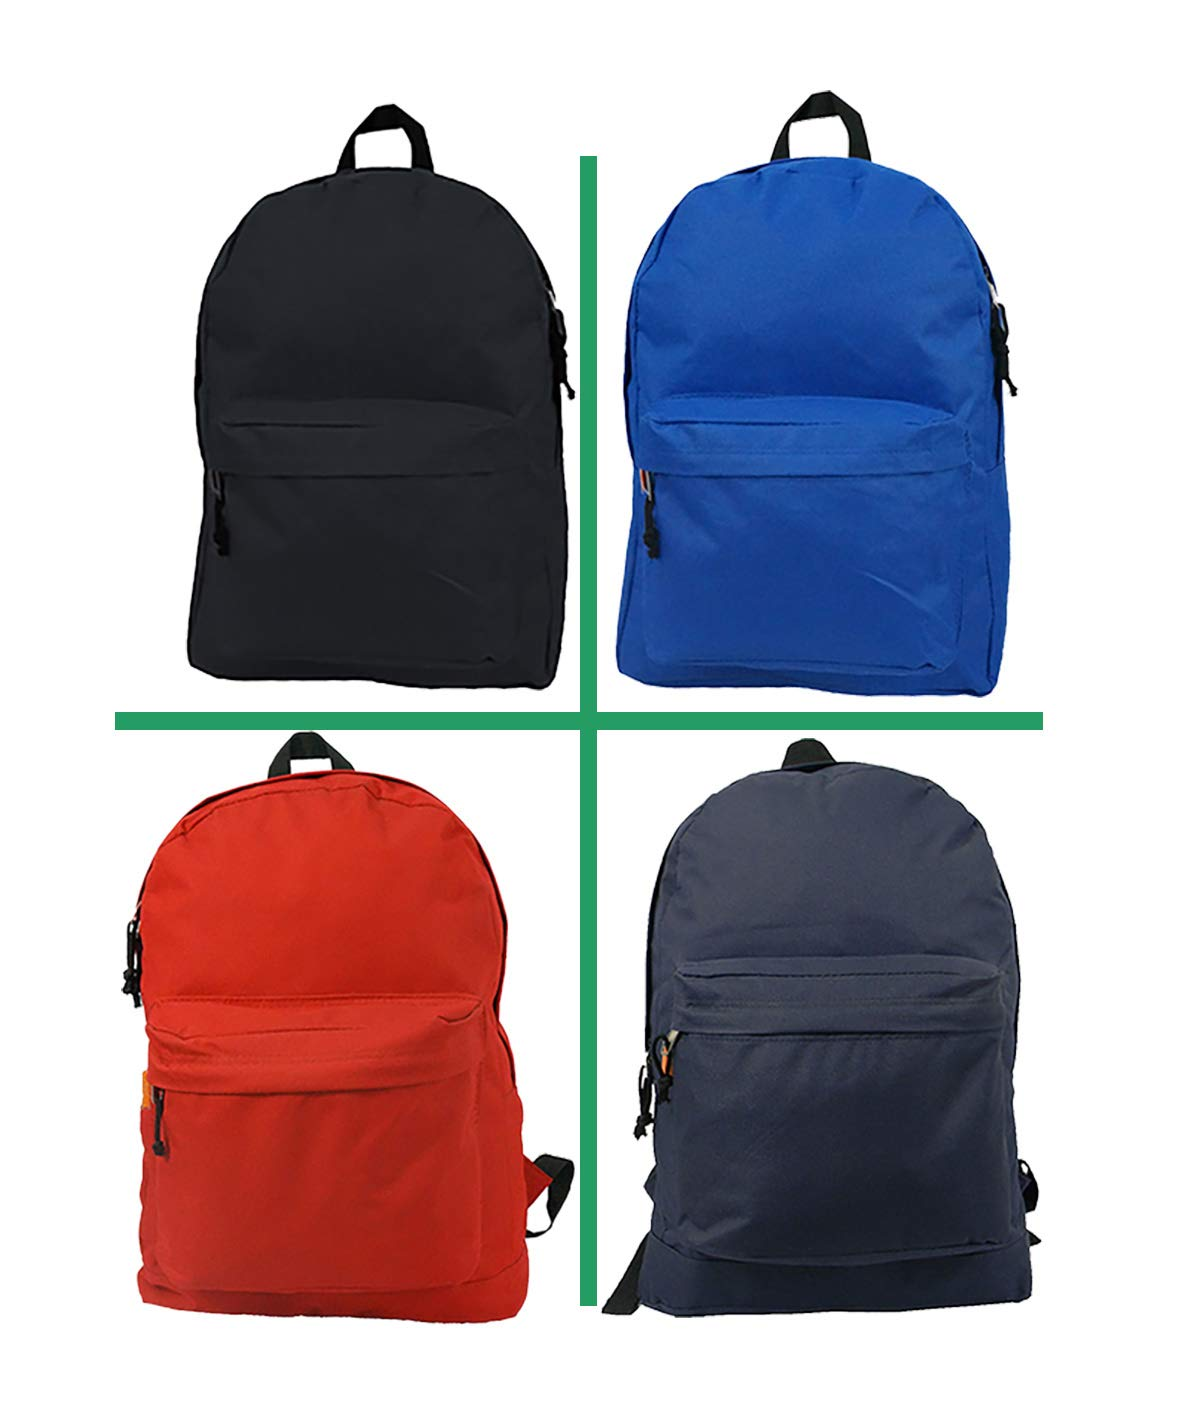 Wholesale Classic Backpack 18 inch Basic Bookbag Padded Back Bulk Cheap Simple Schoolbag Promotional Backpacks Low Price Non Profit Giveaway Student School Daypack 4 Assort Color Case Lot 30pcs